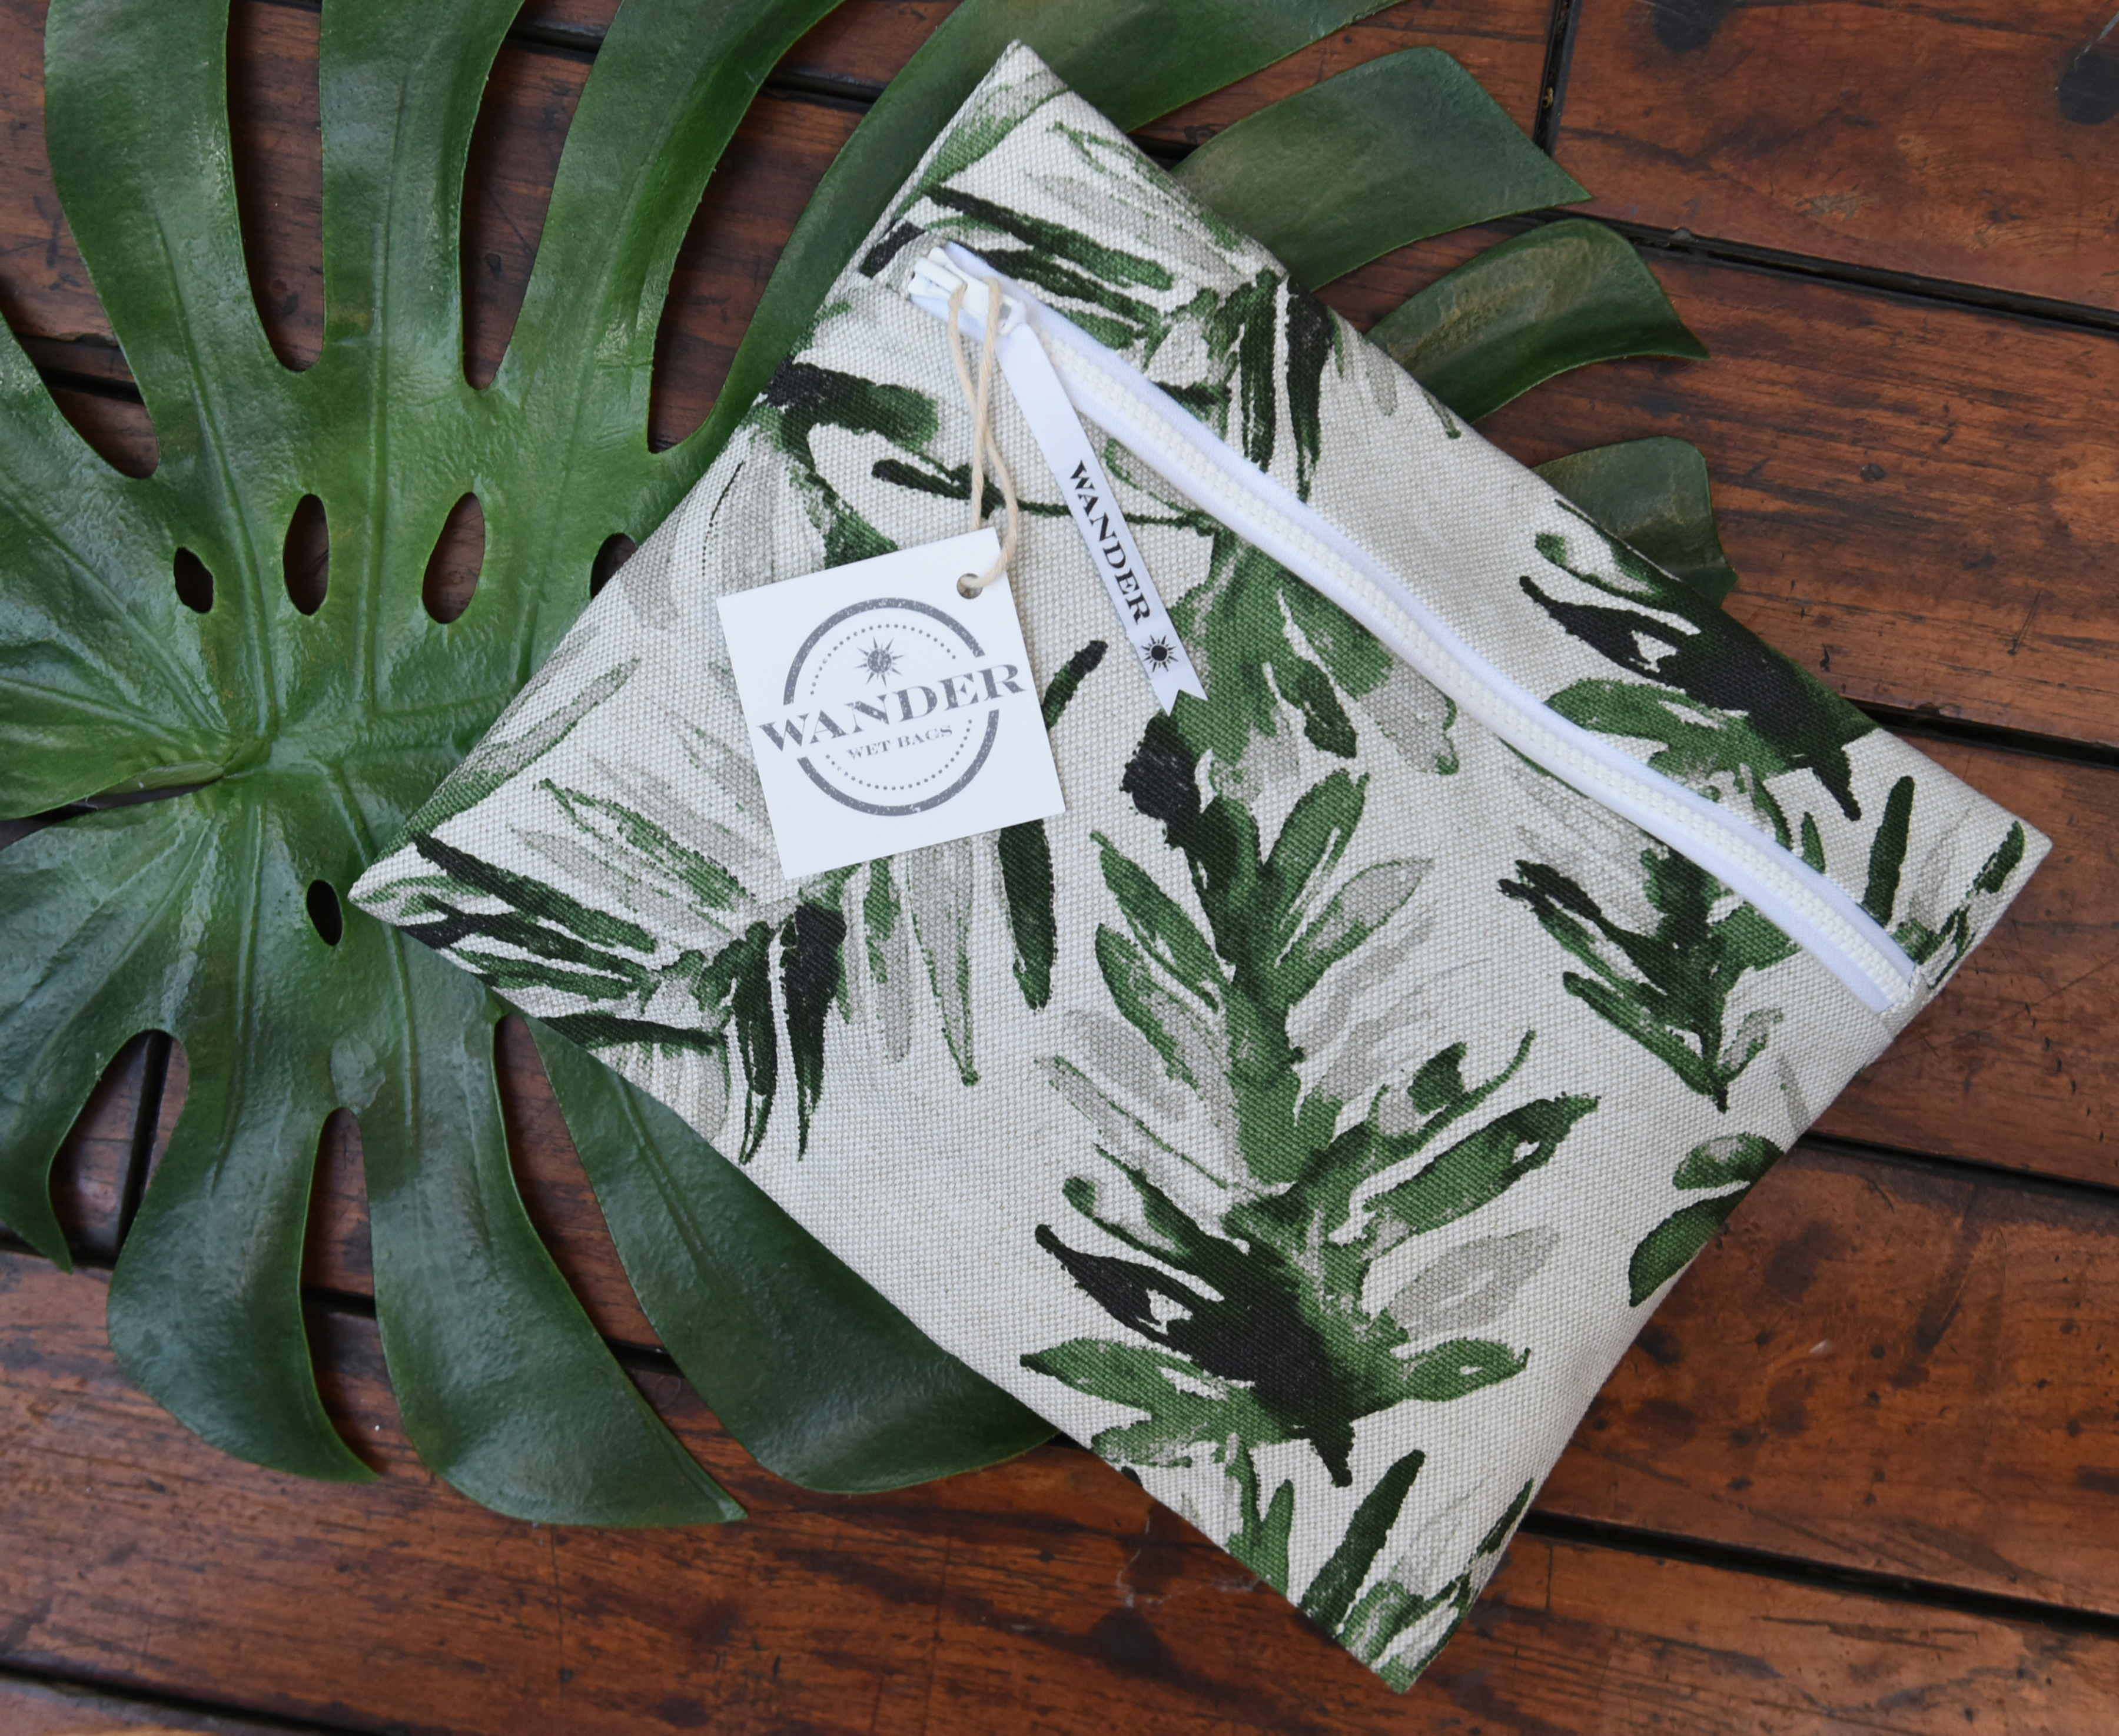 _Stand Tall in Palm Frond Wander Wet Bag ™